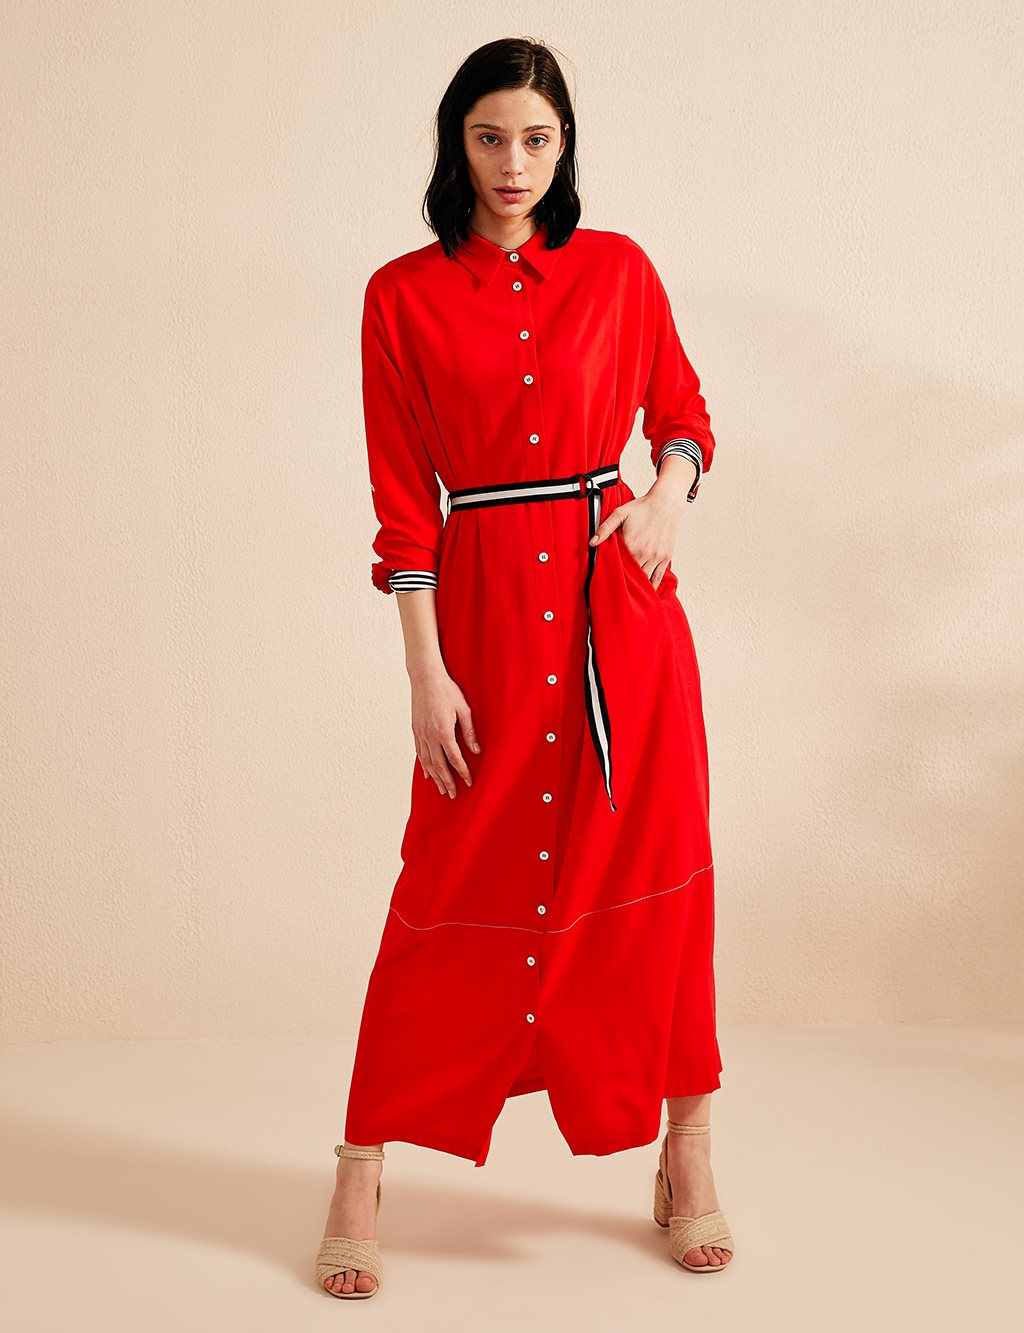 Detailed Dress With Belt B20 23027 Red